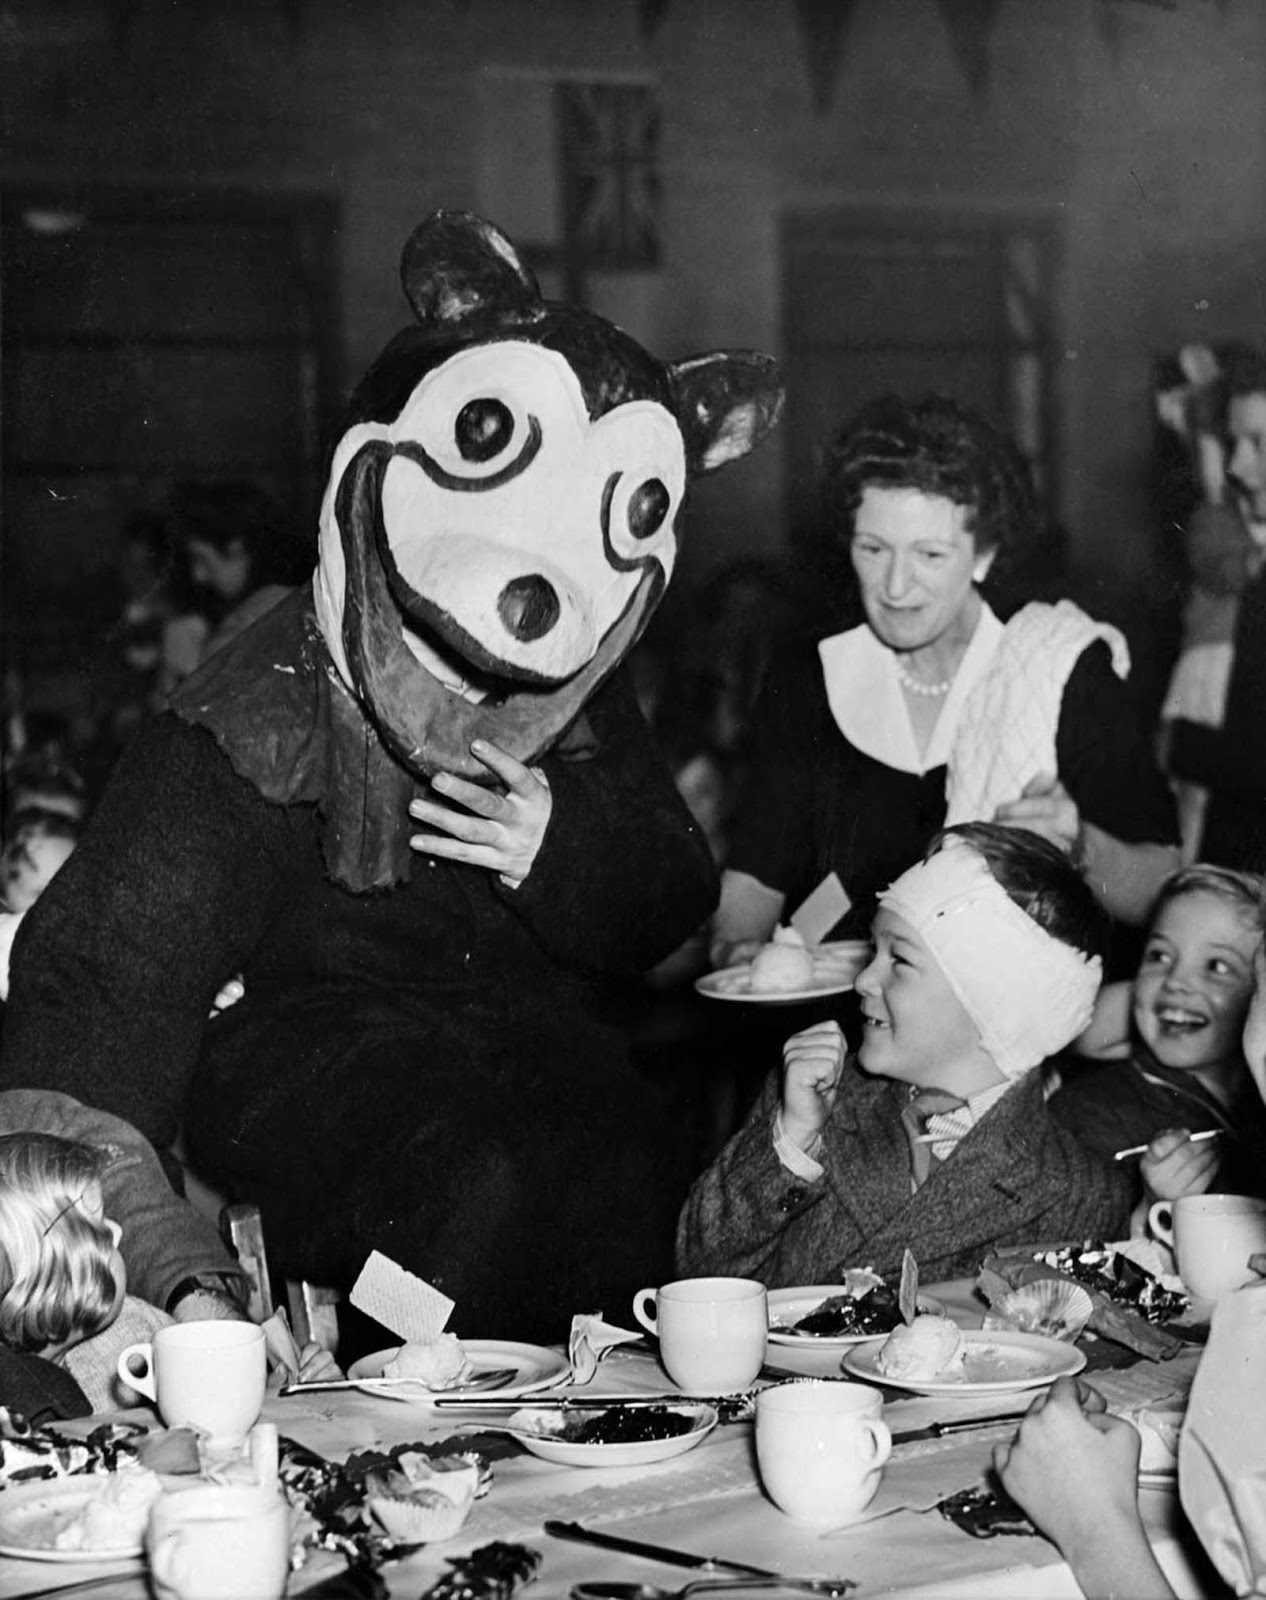 Mickie as a guest at a party given to 350 children by the 562 Battery Searchlight Regt, Streatham, London. 1947.